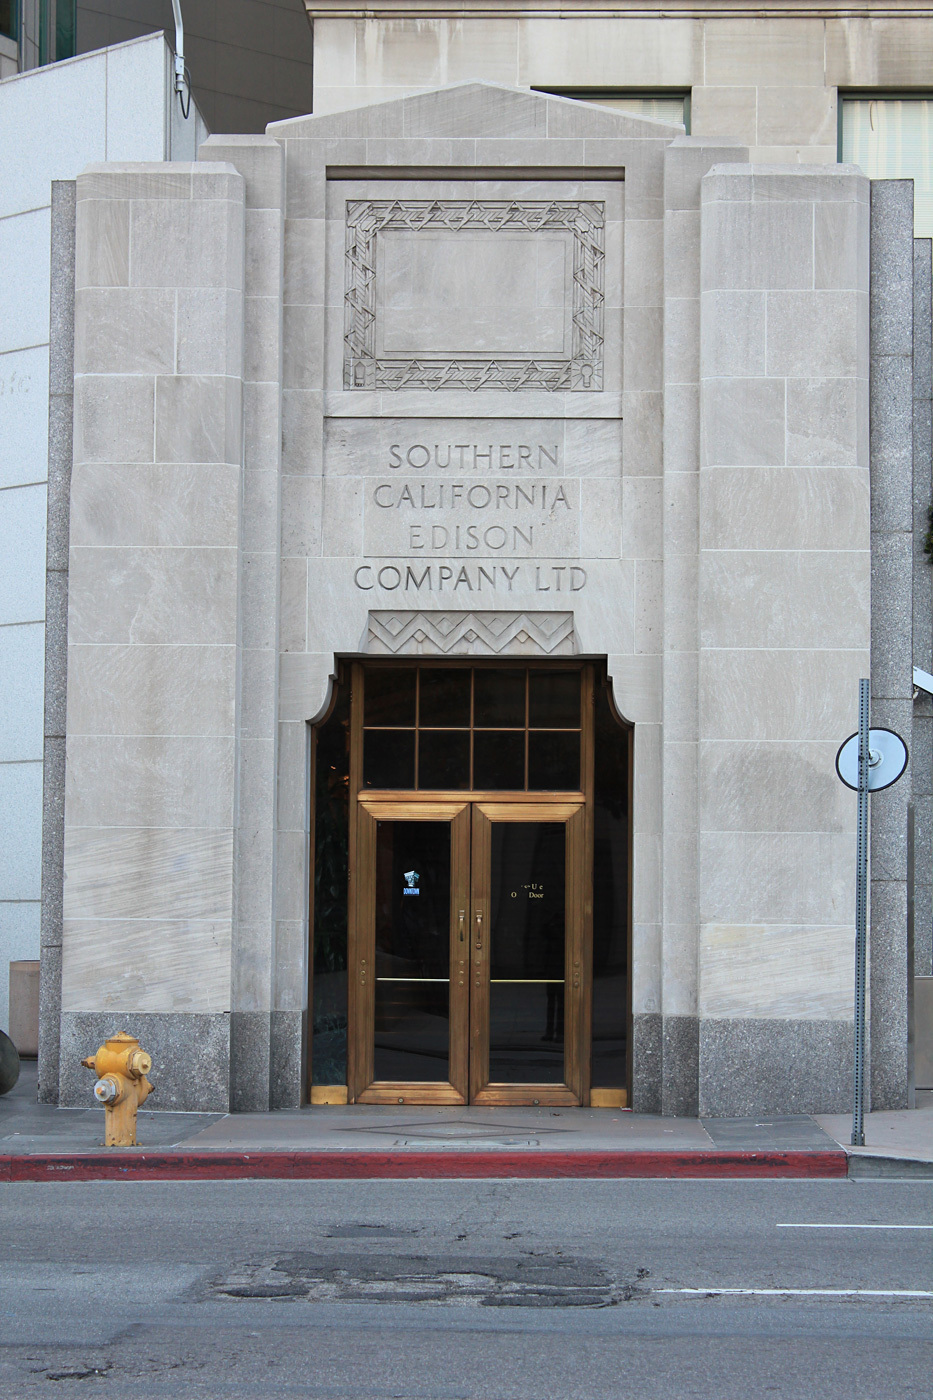 The front façade of the great art deco Southern California Edison Building on 5th & Grand, across from the Central Library & adjacent to the US Bank Building. Image © 2013 Al-Insan B. Lashley Design.